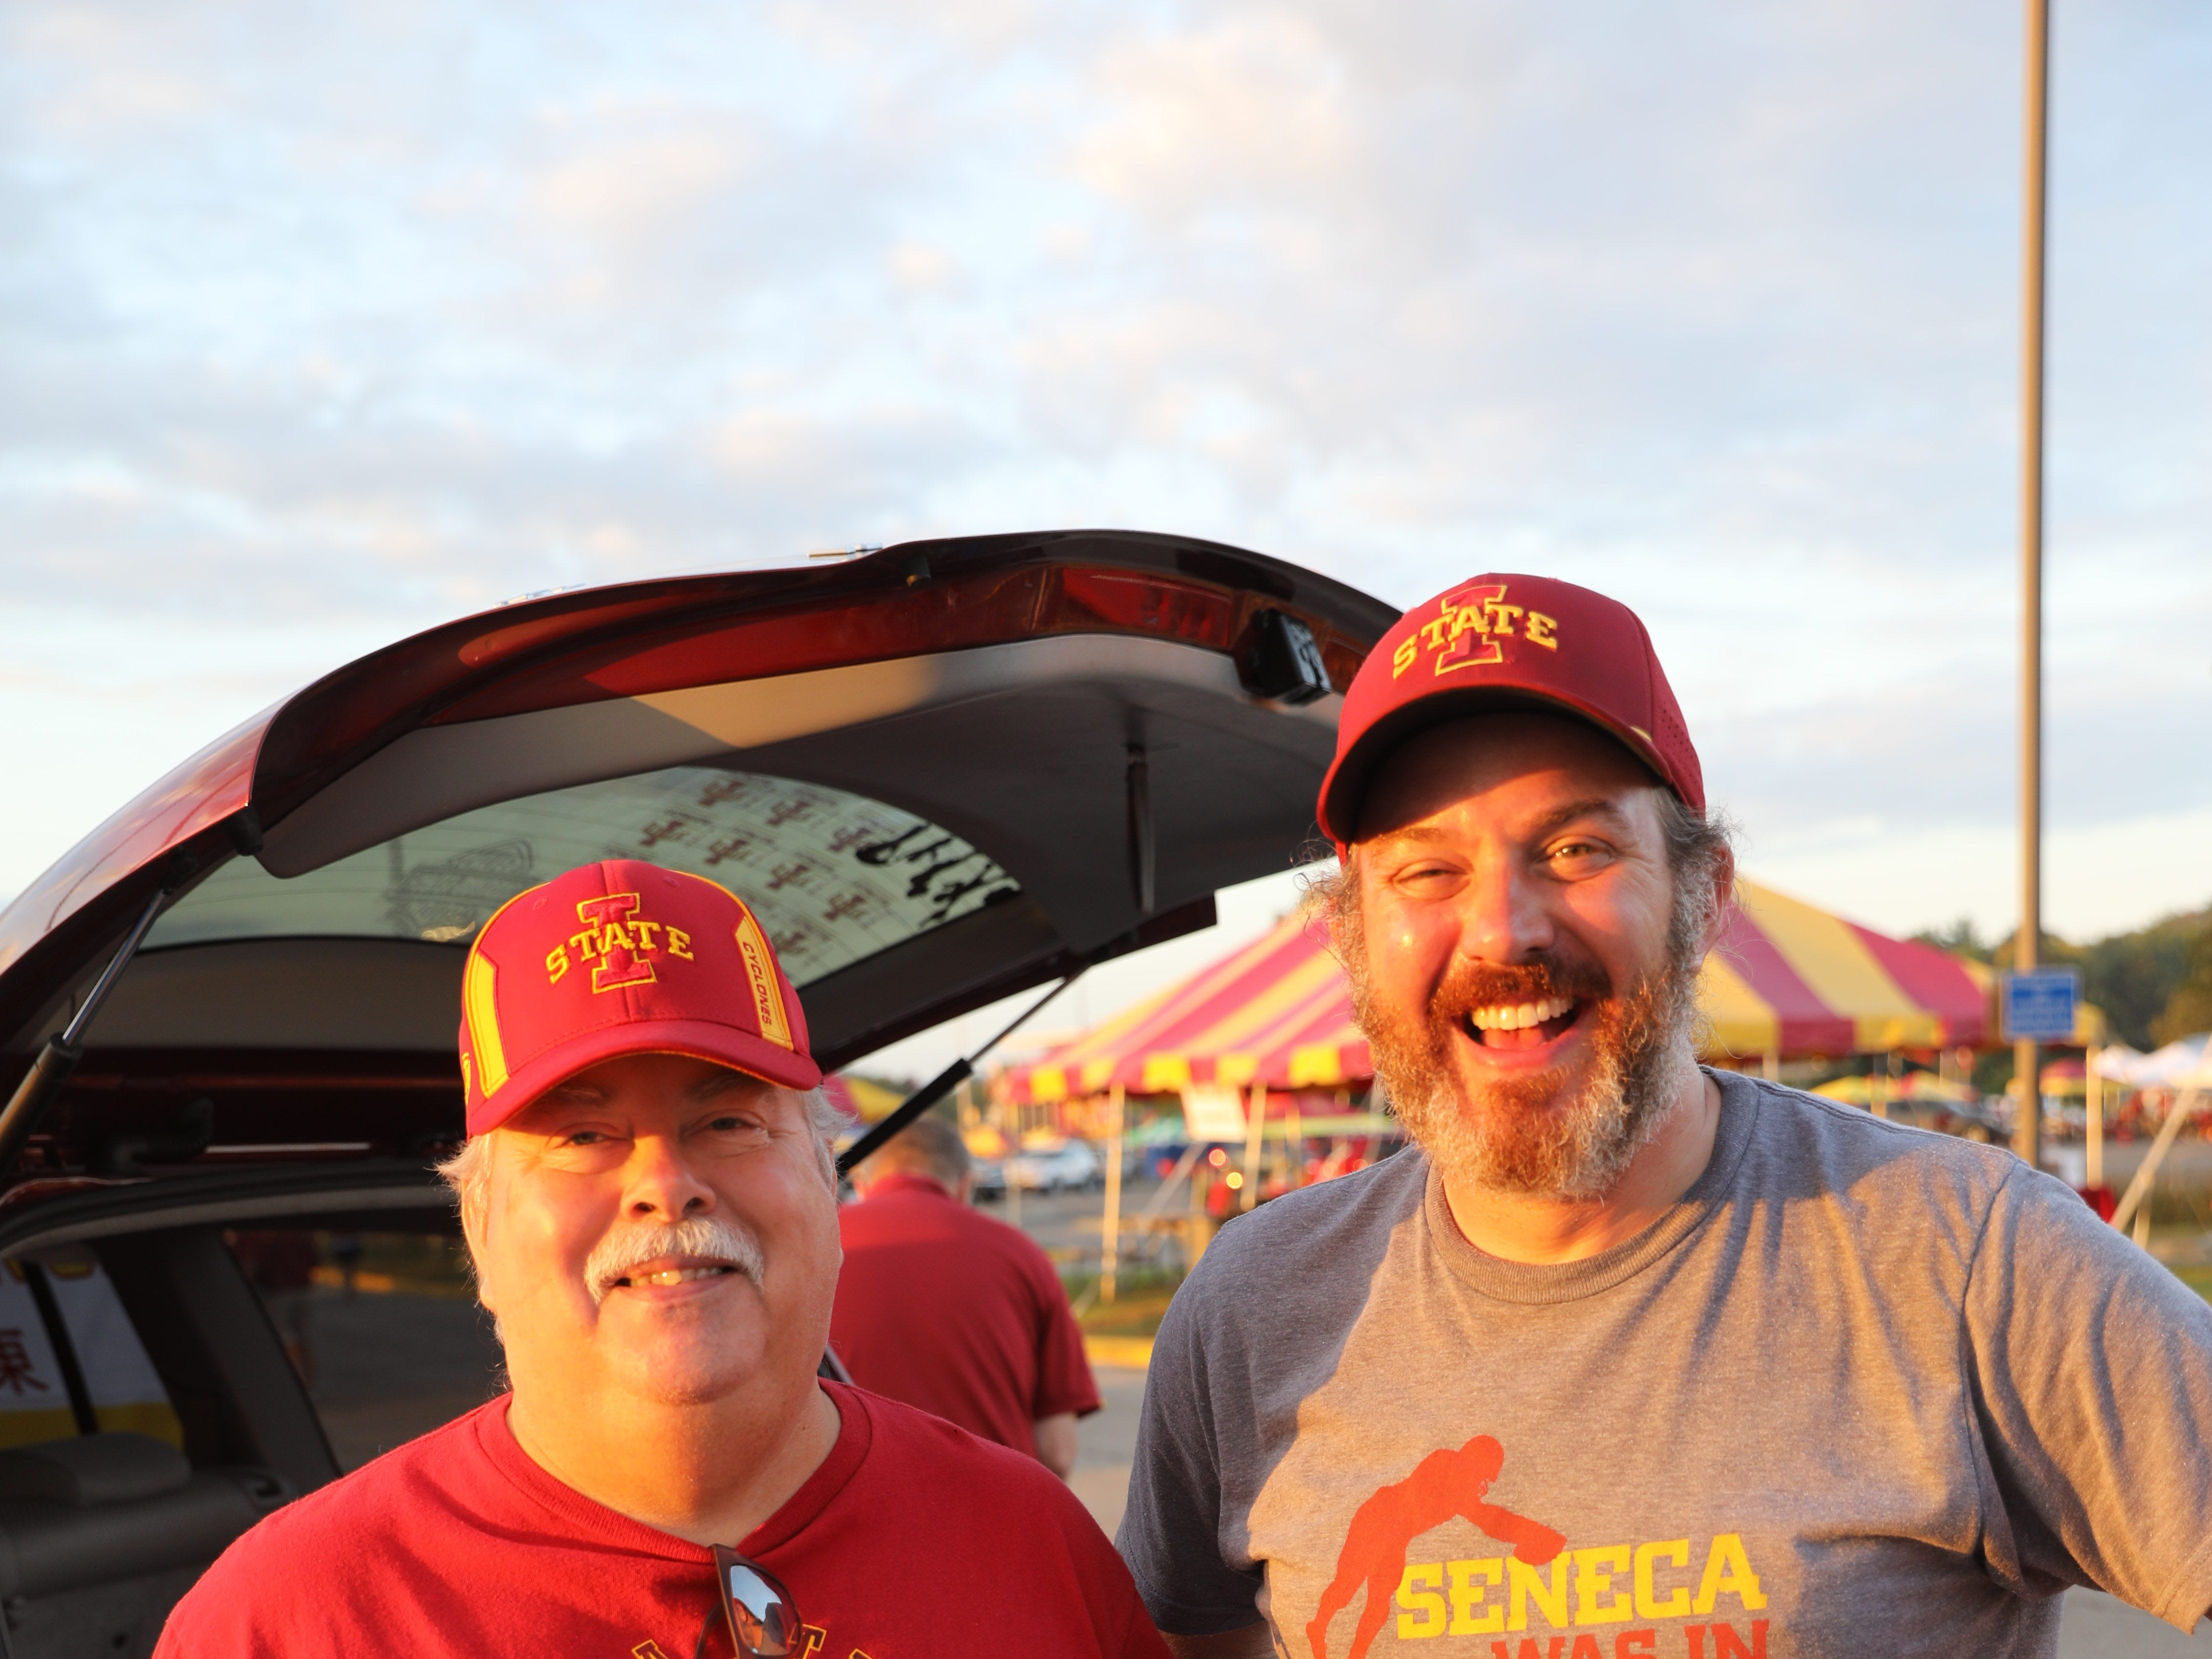 Kerry Showman of Urbandale (left) and Brandon Boelman of West Des Moines Saturday, Sept. 15, 2018, before the Iowa State football game against Oklahoma in Ames.